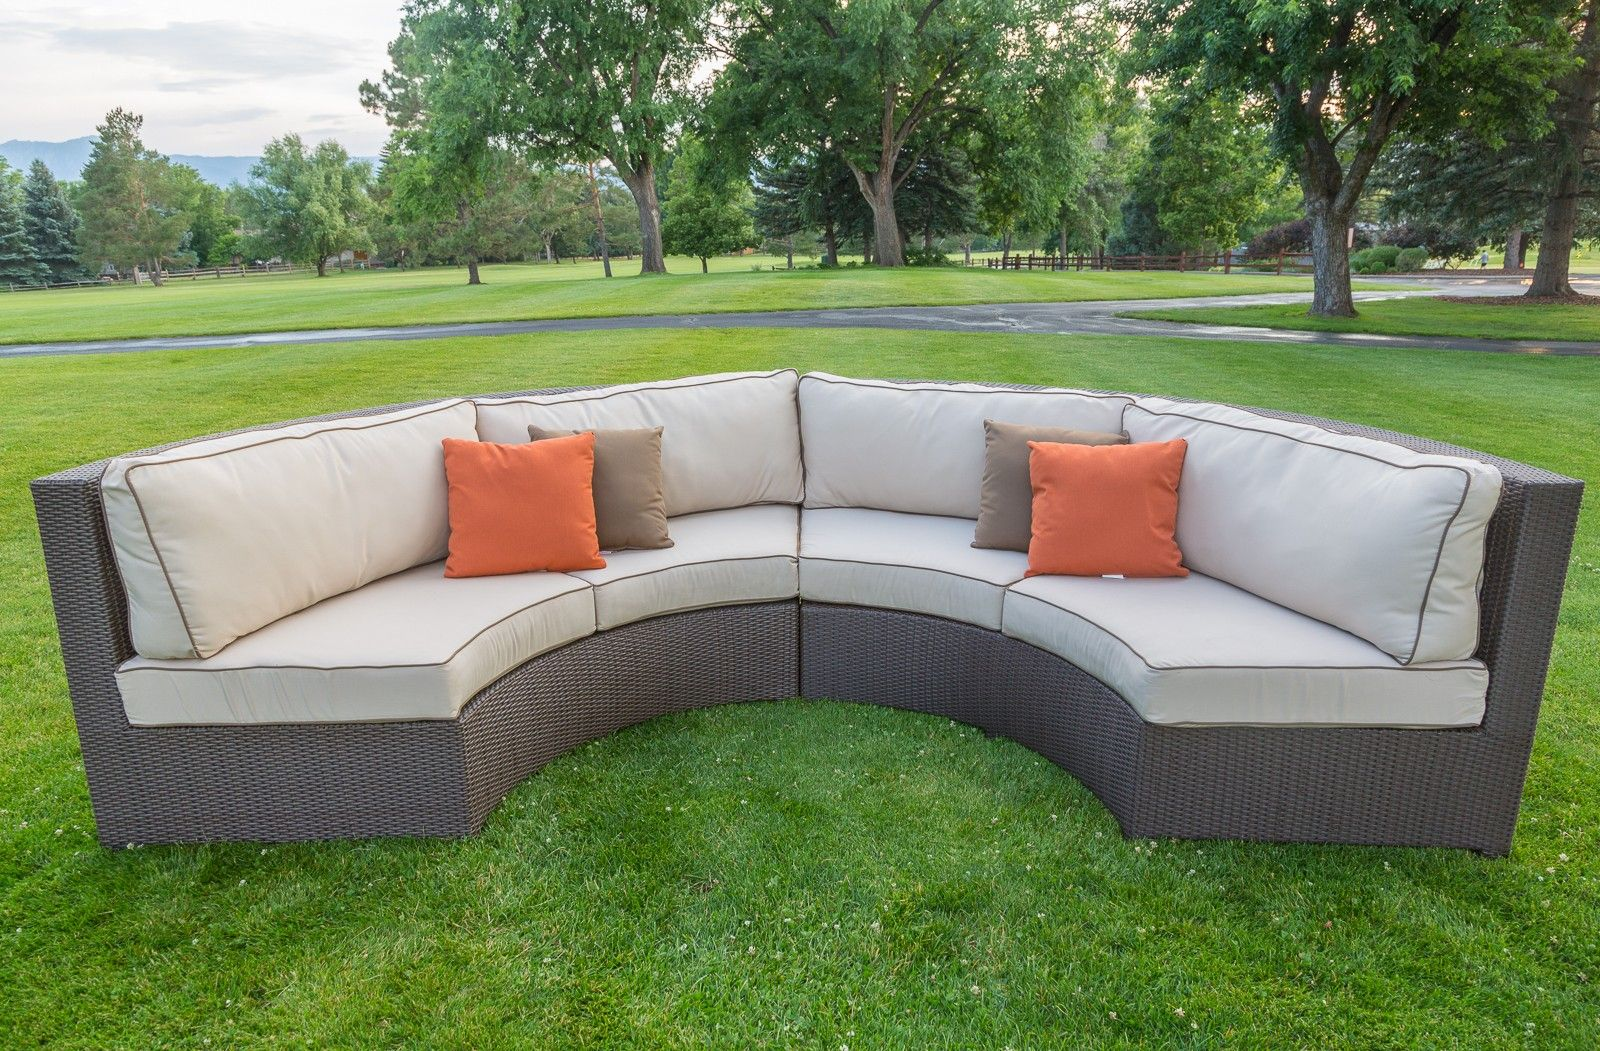 Malibu Collection Curved Wicker Sectional Sofa Set Outdoor Sofas